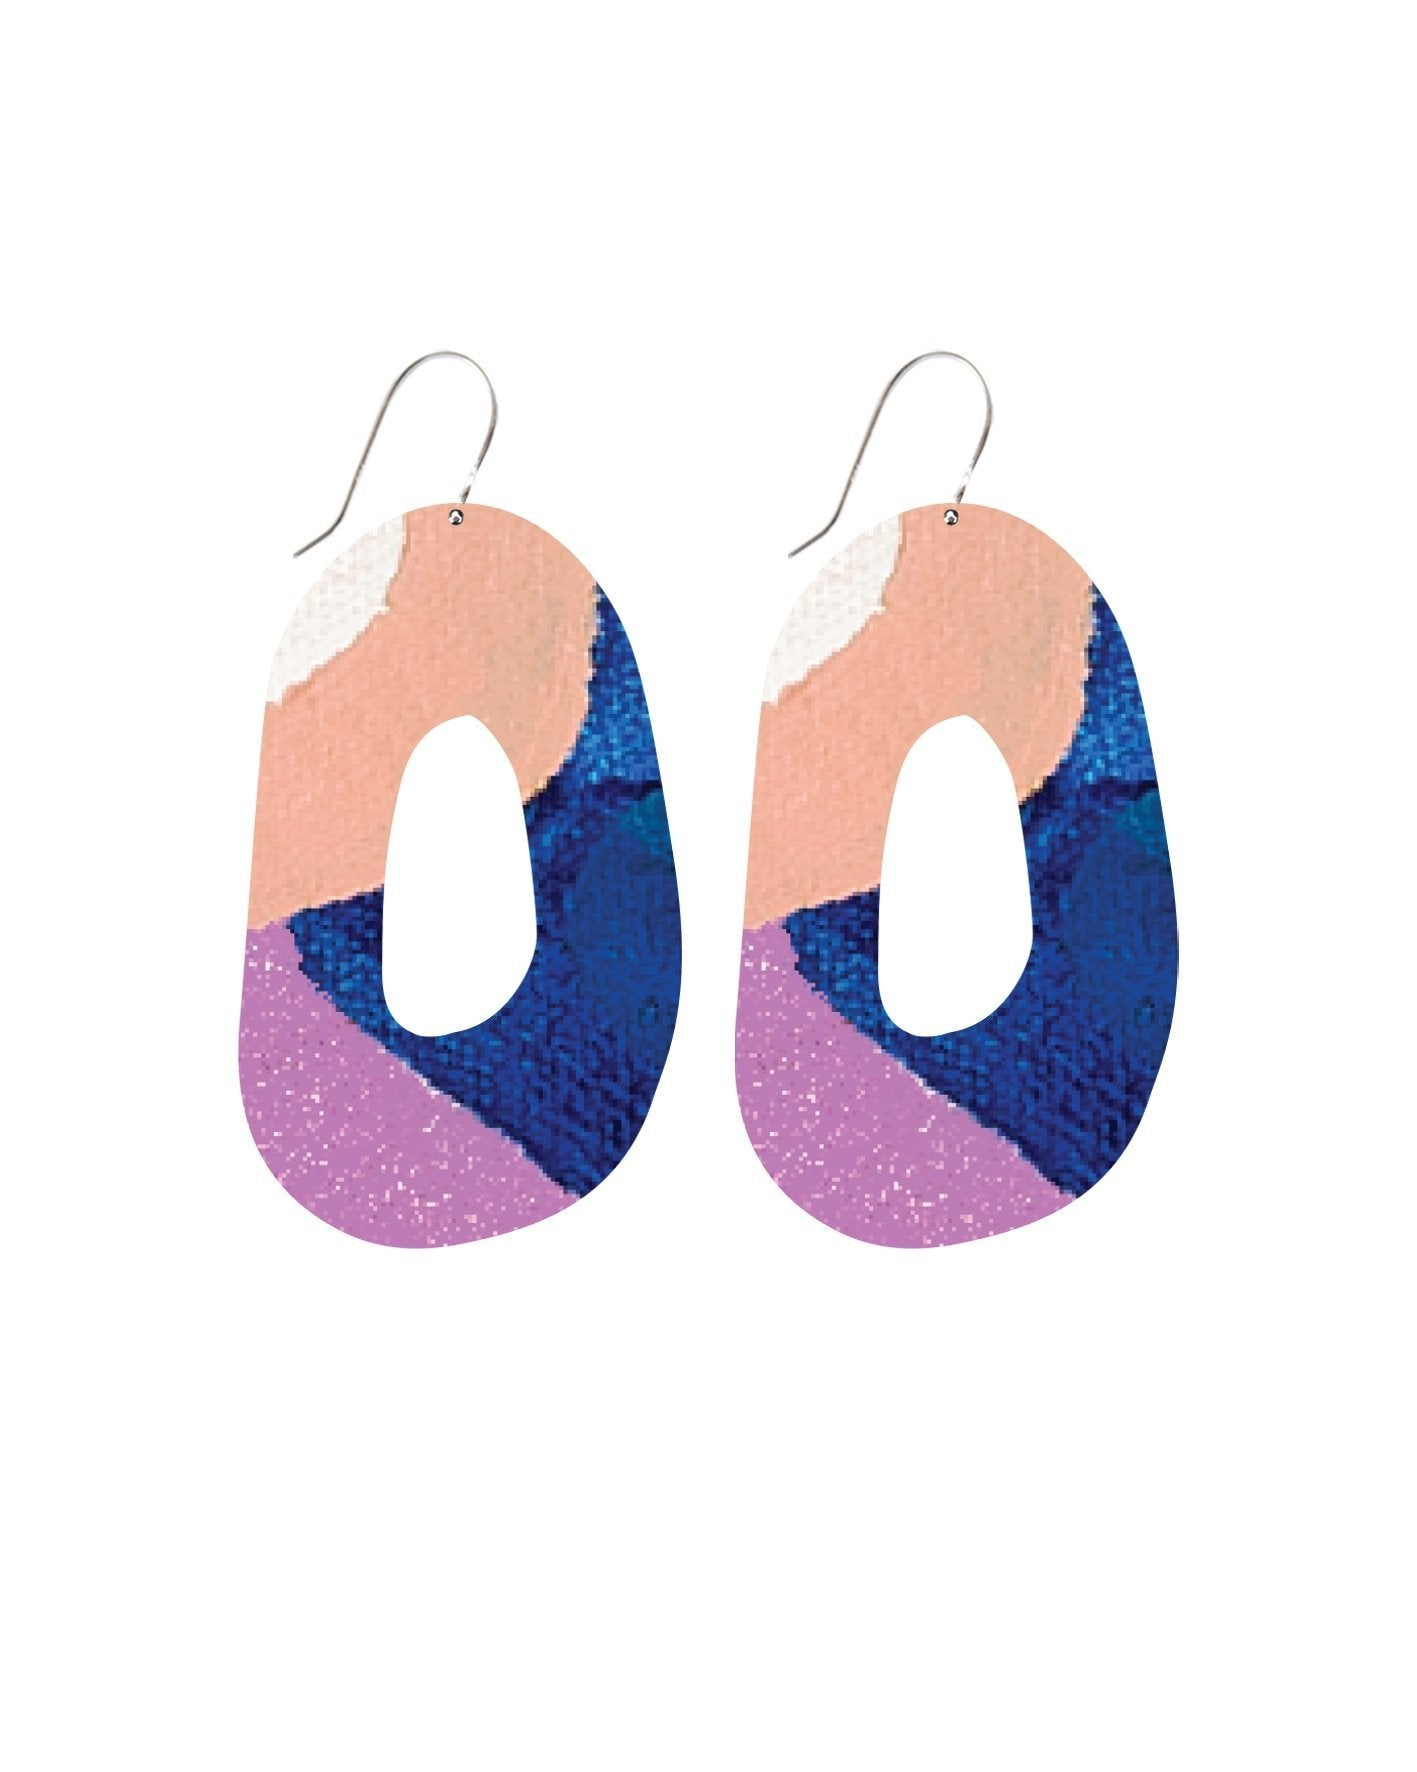 Wild Kate Mayes Organic Shape Drop Earrings